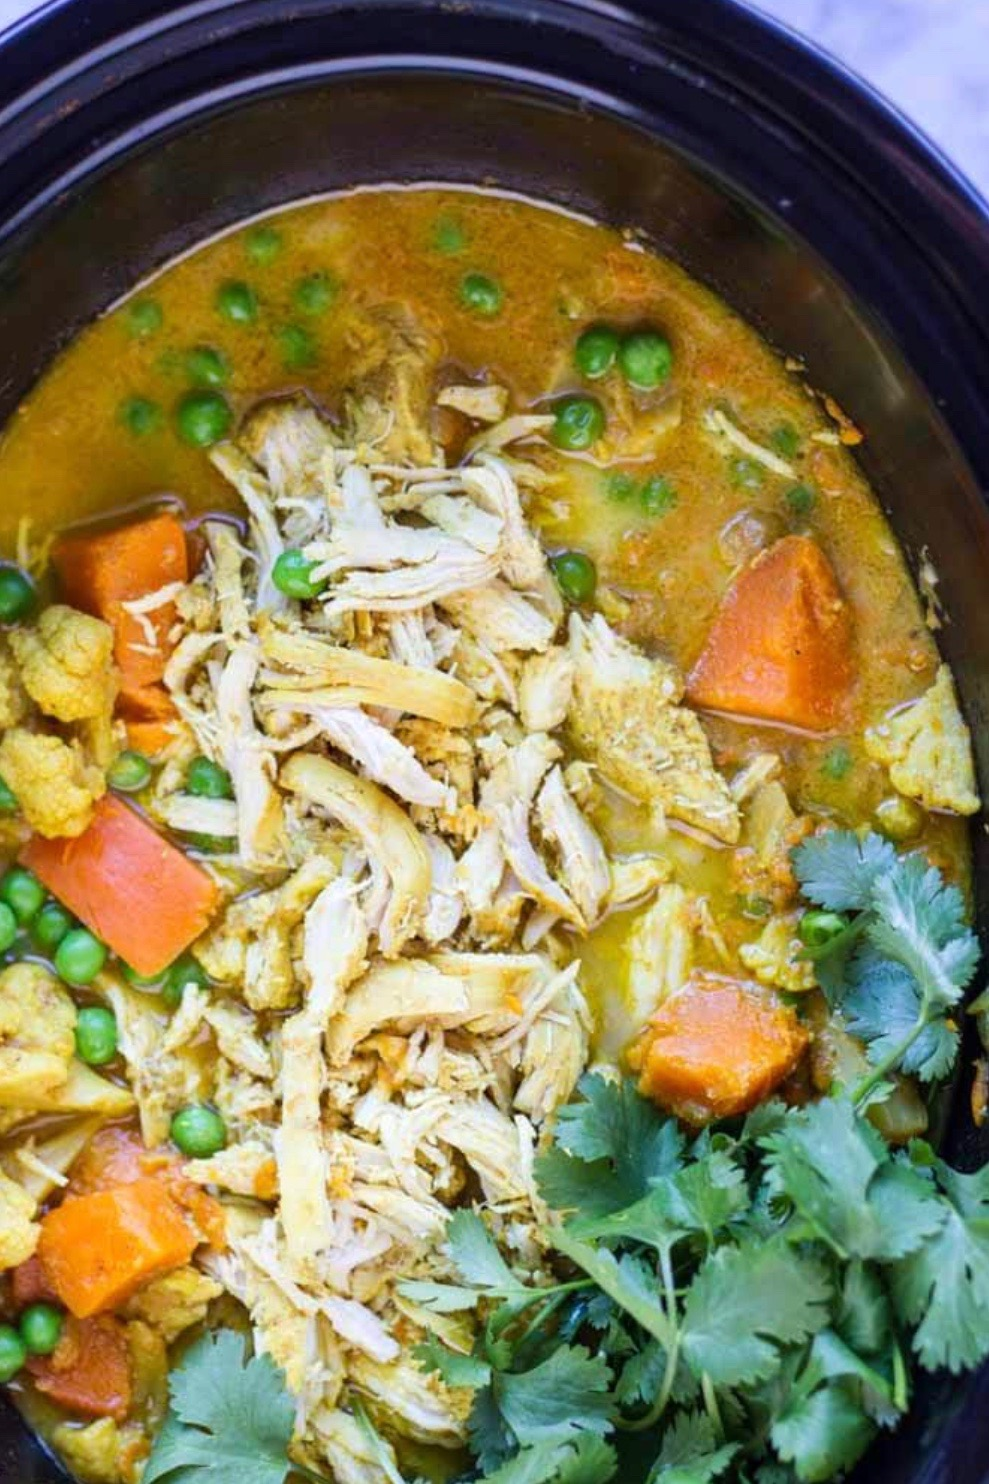 slowcooker with chicken curry in it